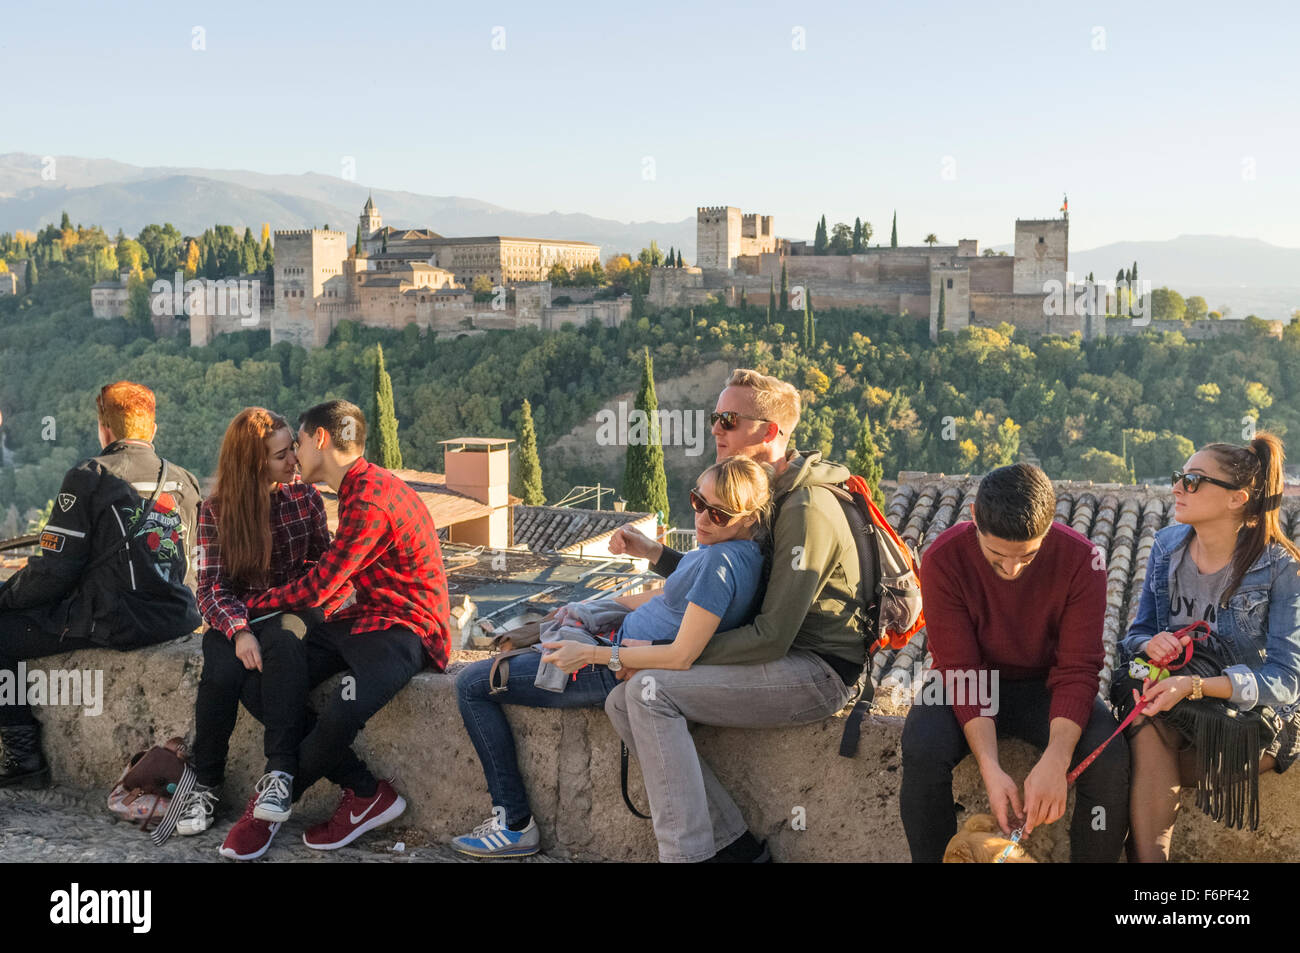 Tourists and couple kissing at the Mirador San Nicolas in the Albaicin with Alhambra in background. Granada, Spain - Stock Image